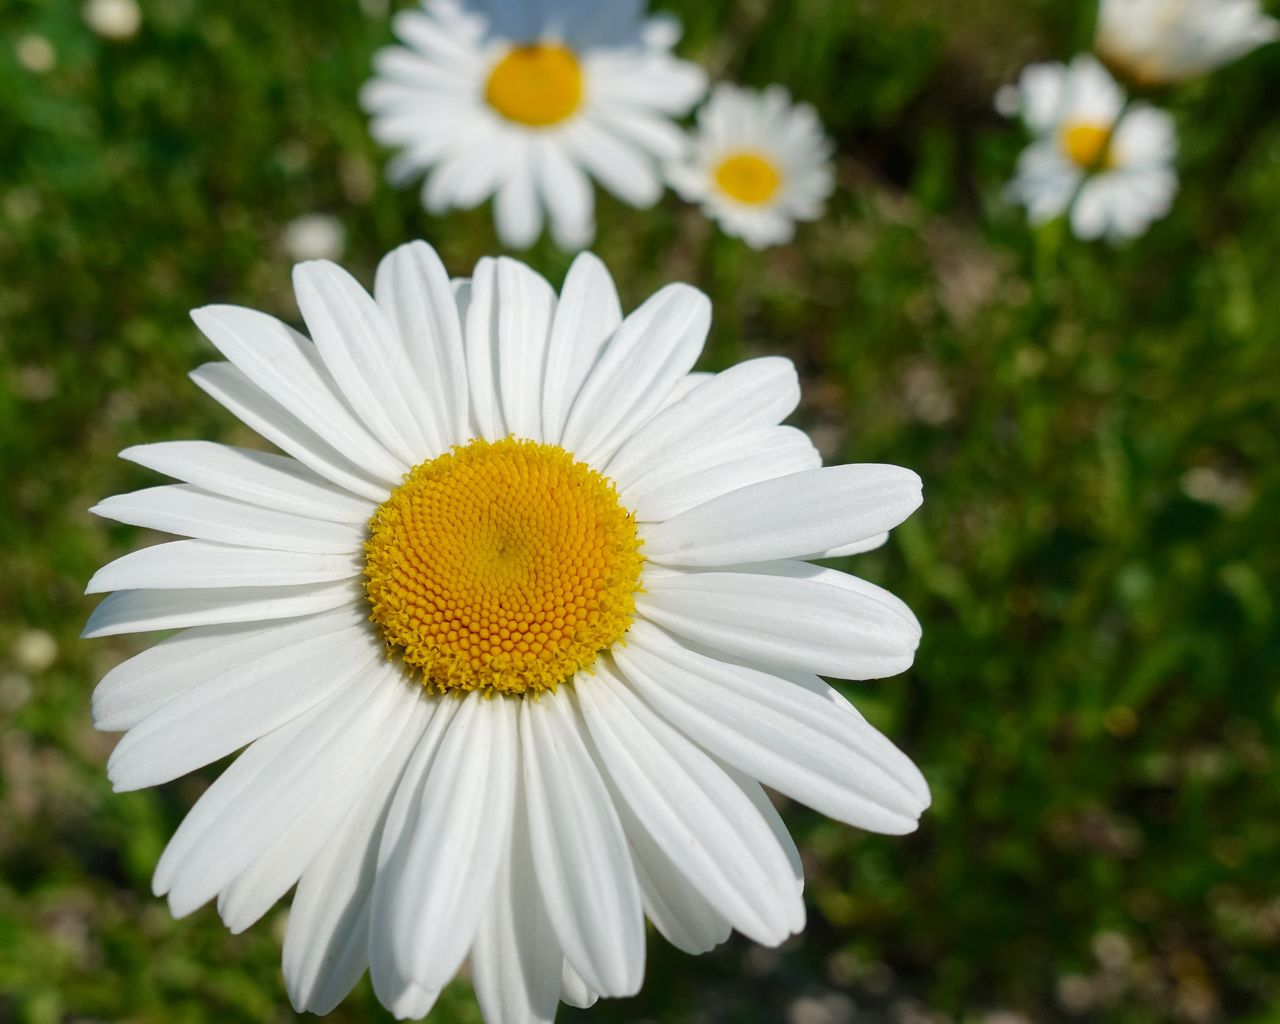 flowering plant, flower, freshness, vulnerability, plant, fragility, inflorescence, flower head, beauty in nature, growth, petal, close-up, white color, pollen, focus on foreground, daisy, yellow, nature, day, no people, outdoors